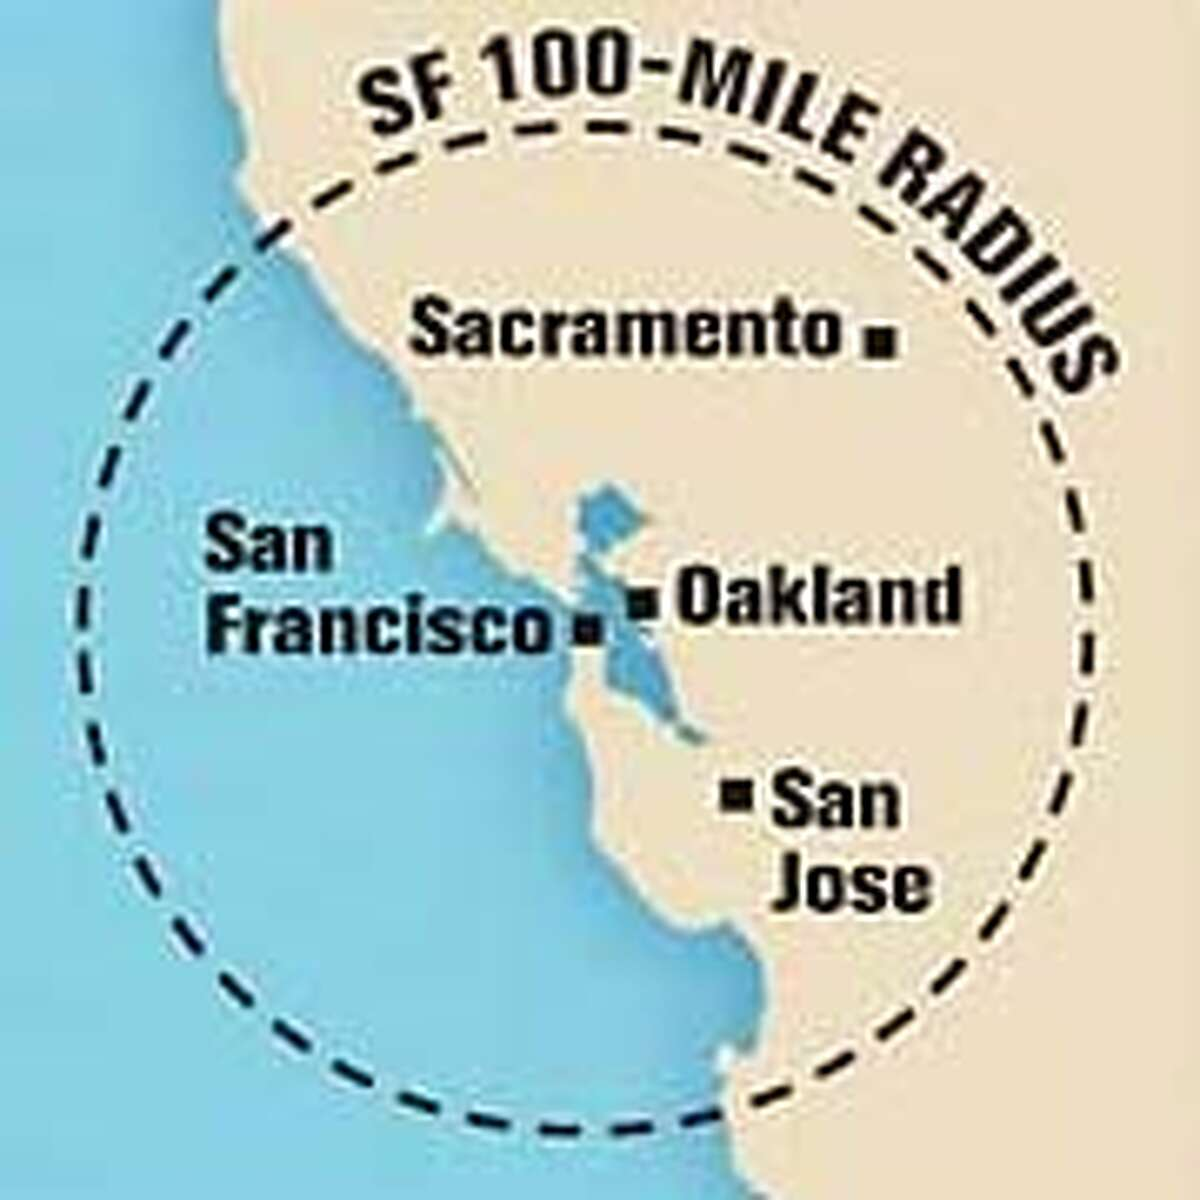 SF 100-Mile Radius. Chronicle Graphic